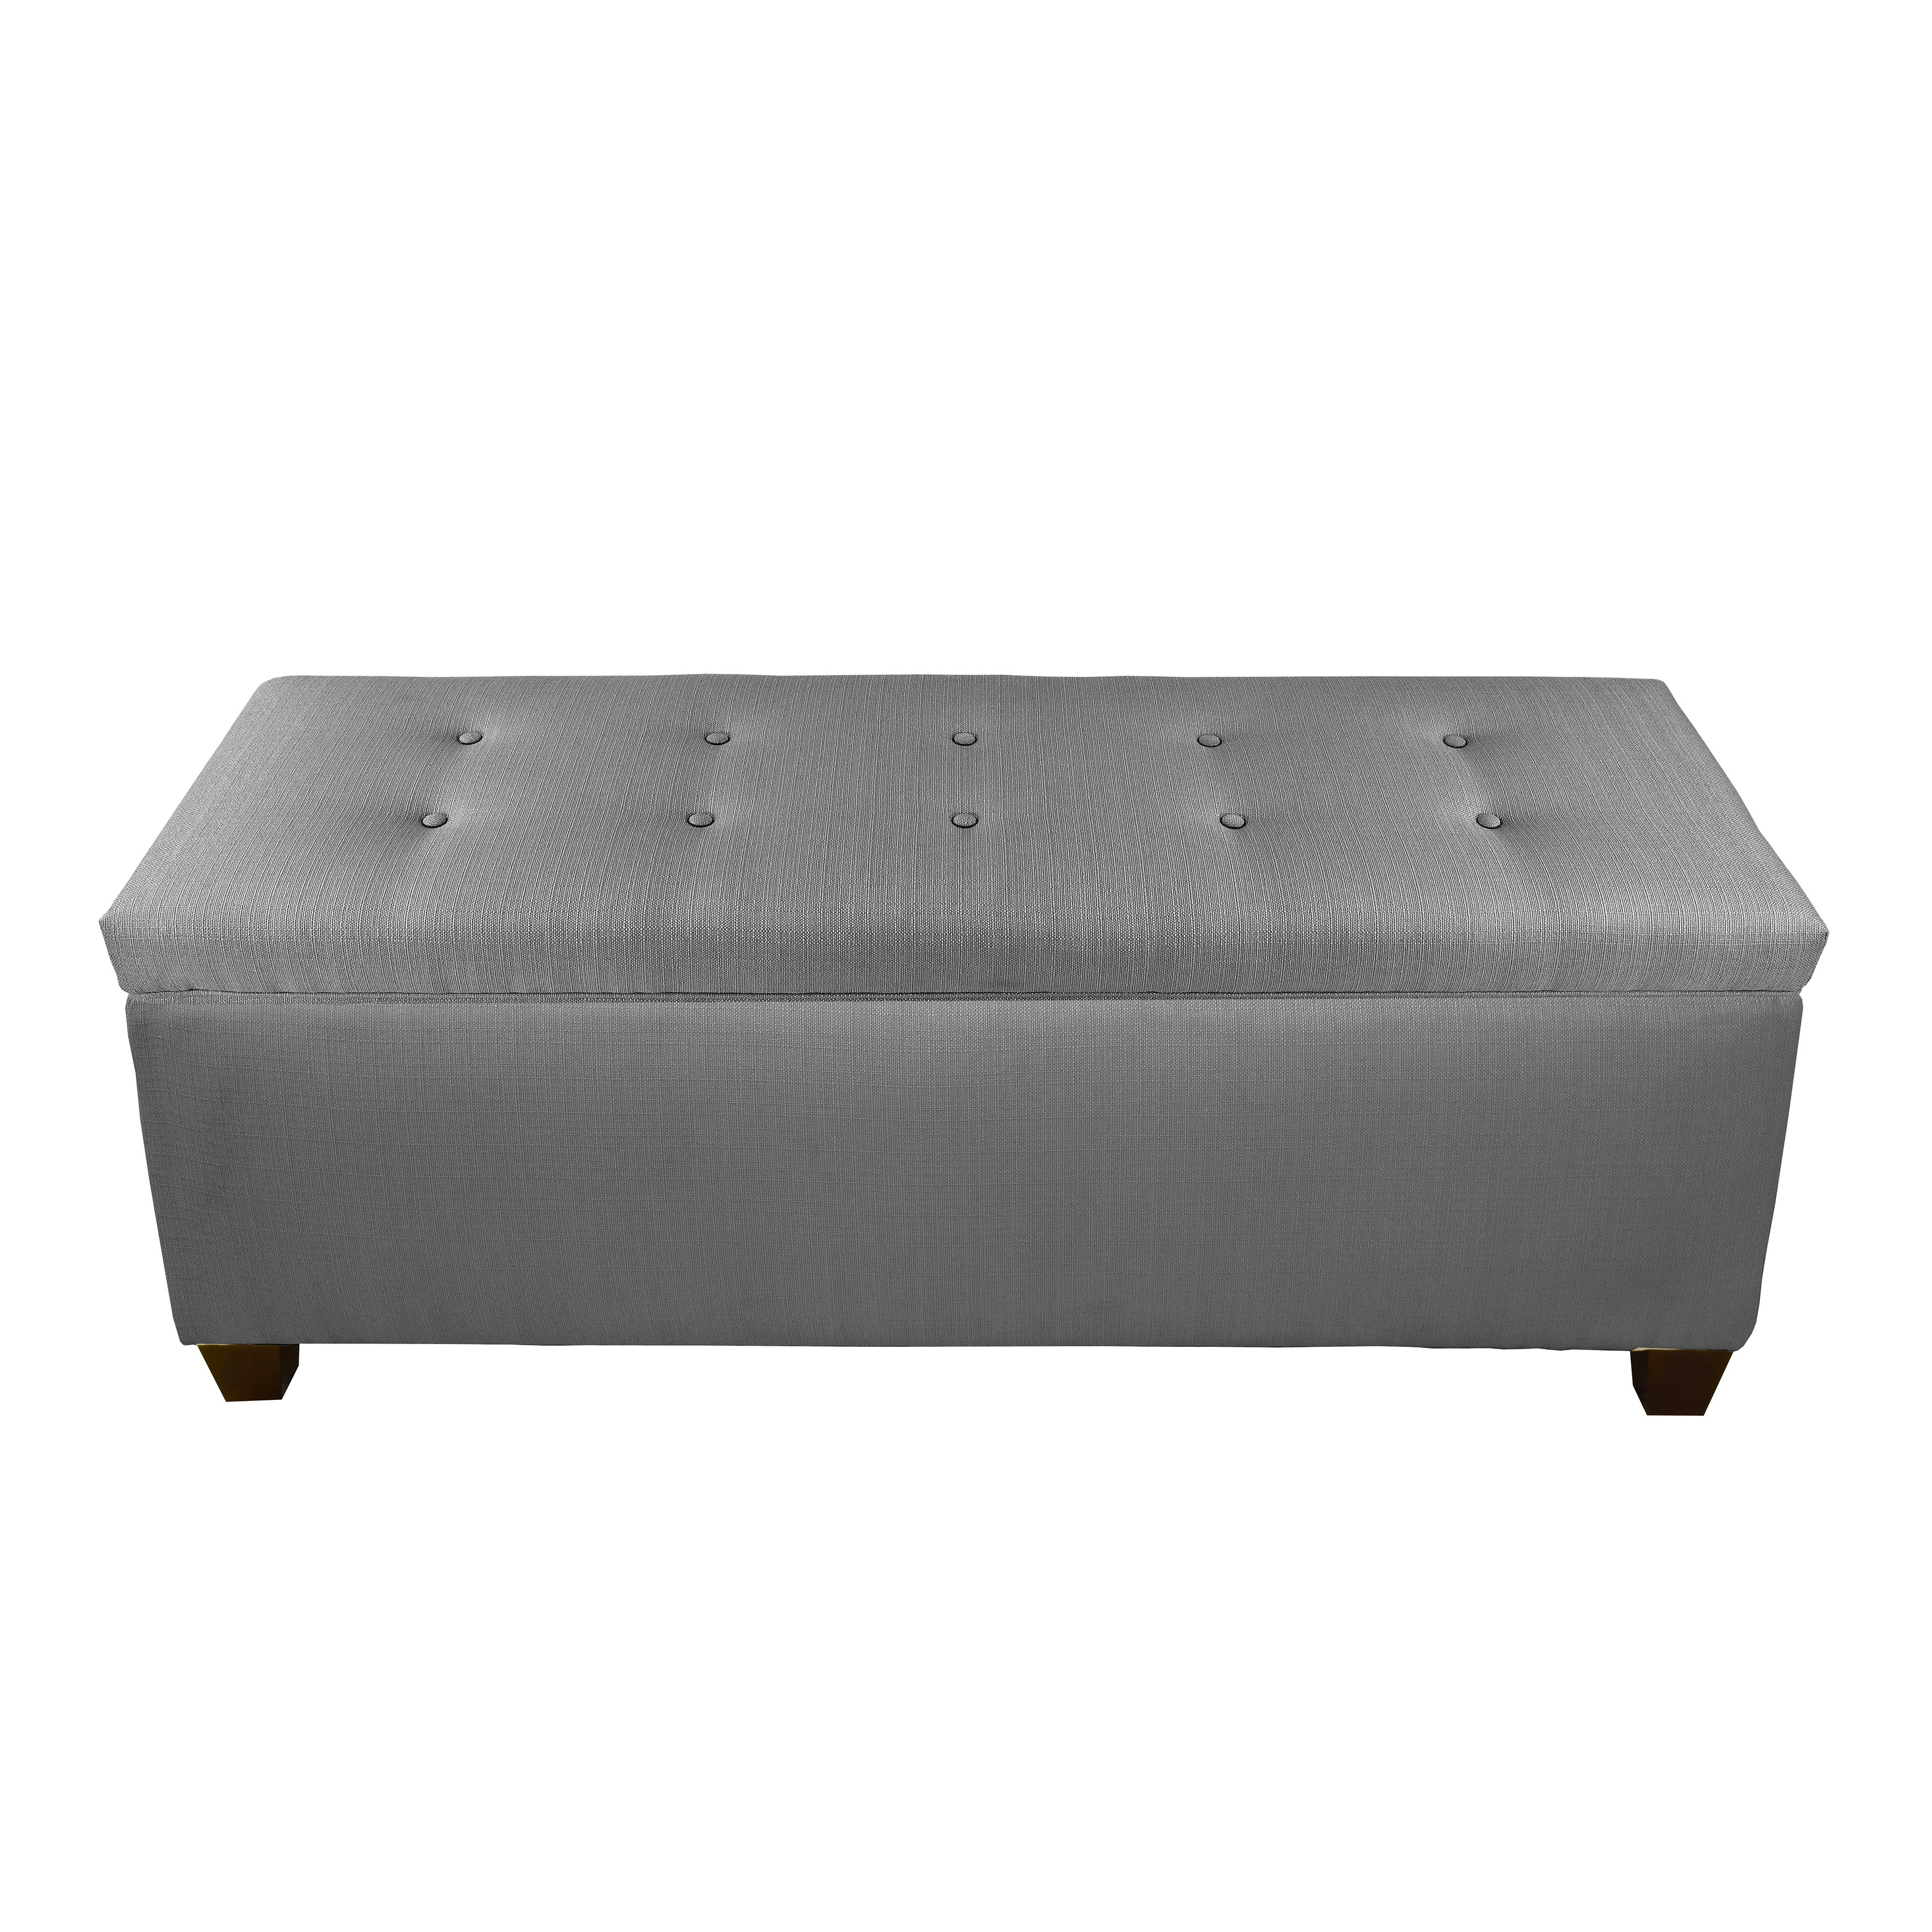 brooke garden today product home gray storage button long shipping free overstock tufted bench ottoman